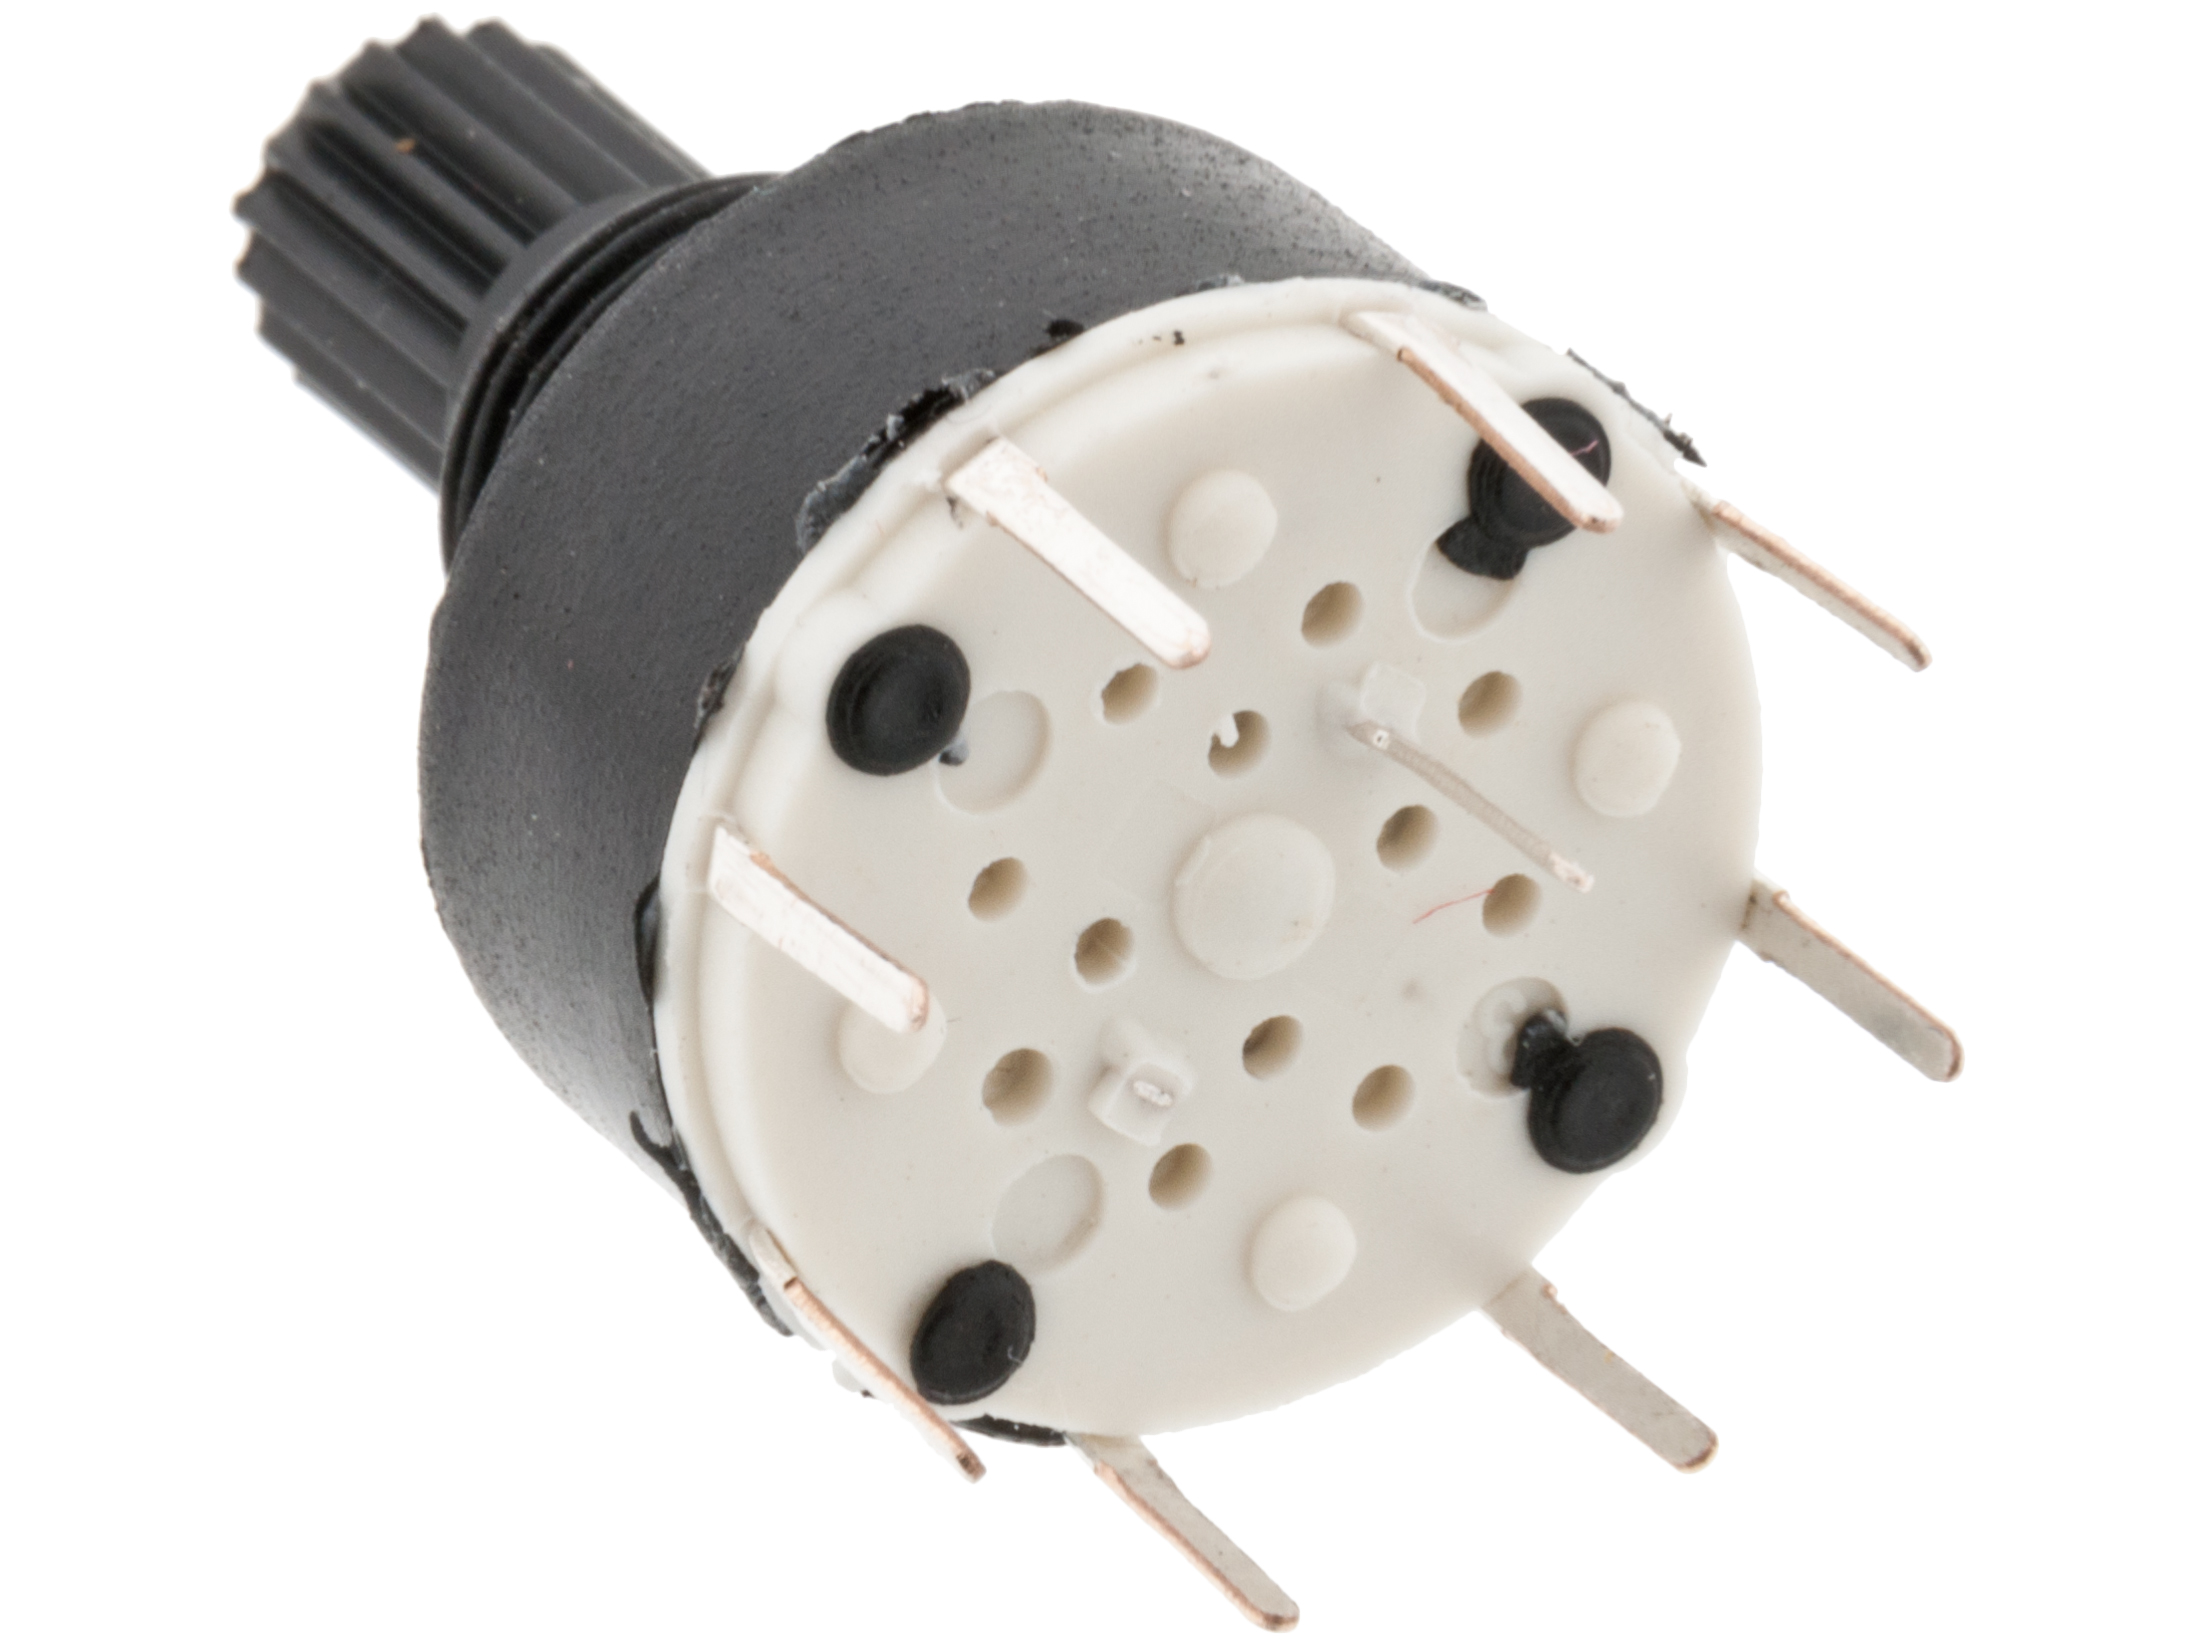 Buy Rotary Switch Mini 1 P 8 Pos Pcb At The Right Price Electrokit Dip Wiring Diagram